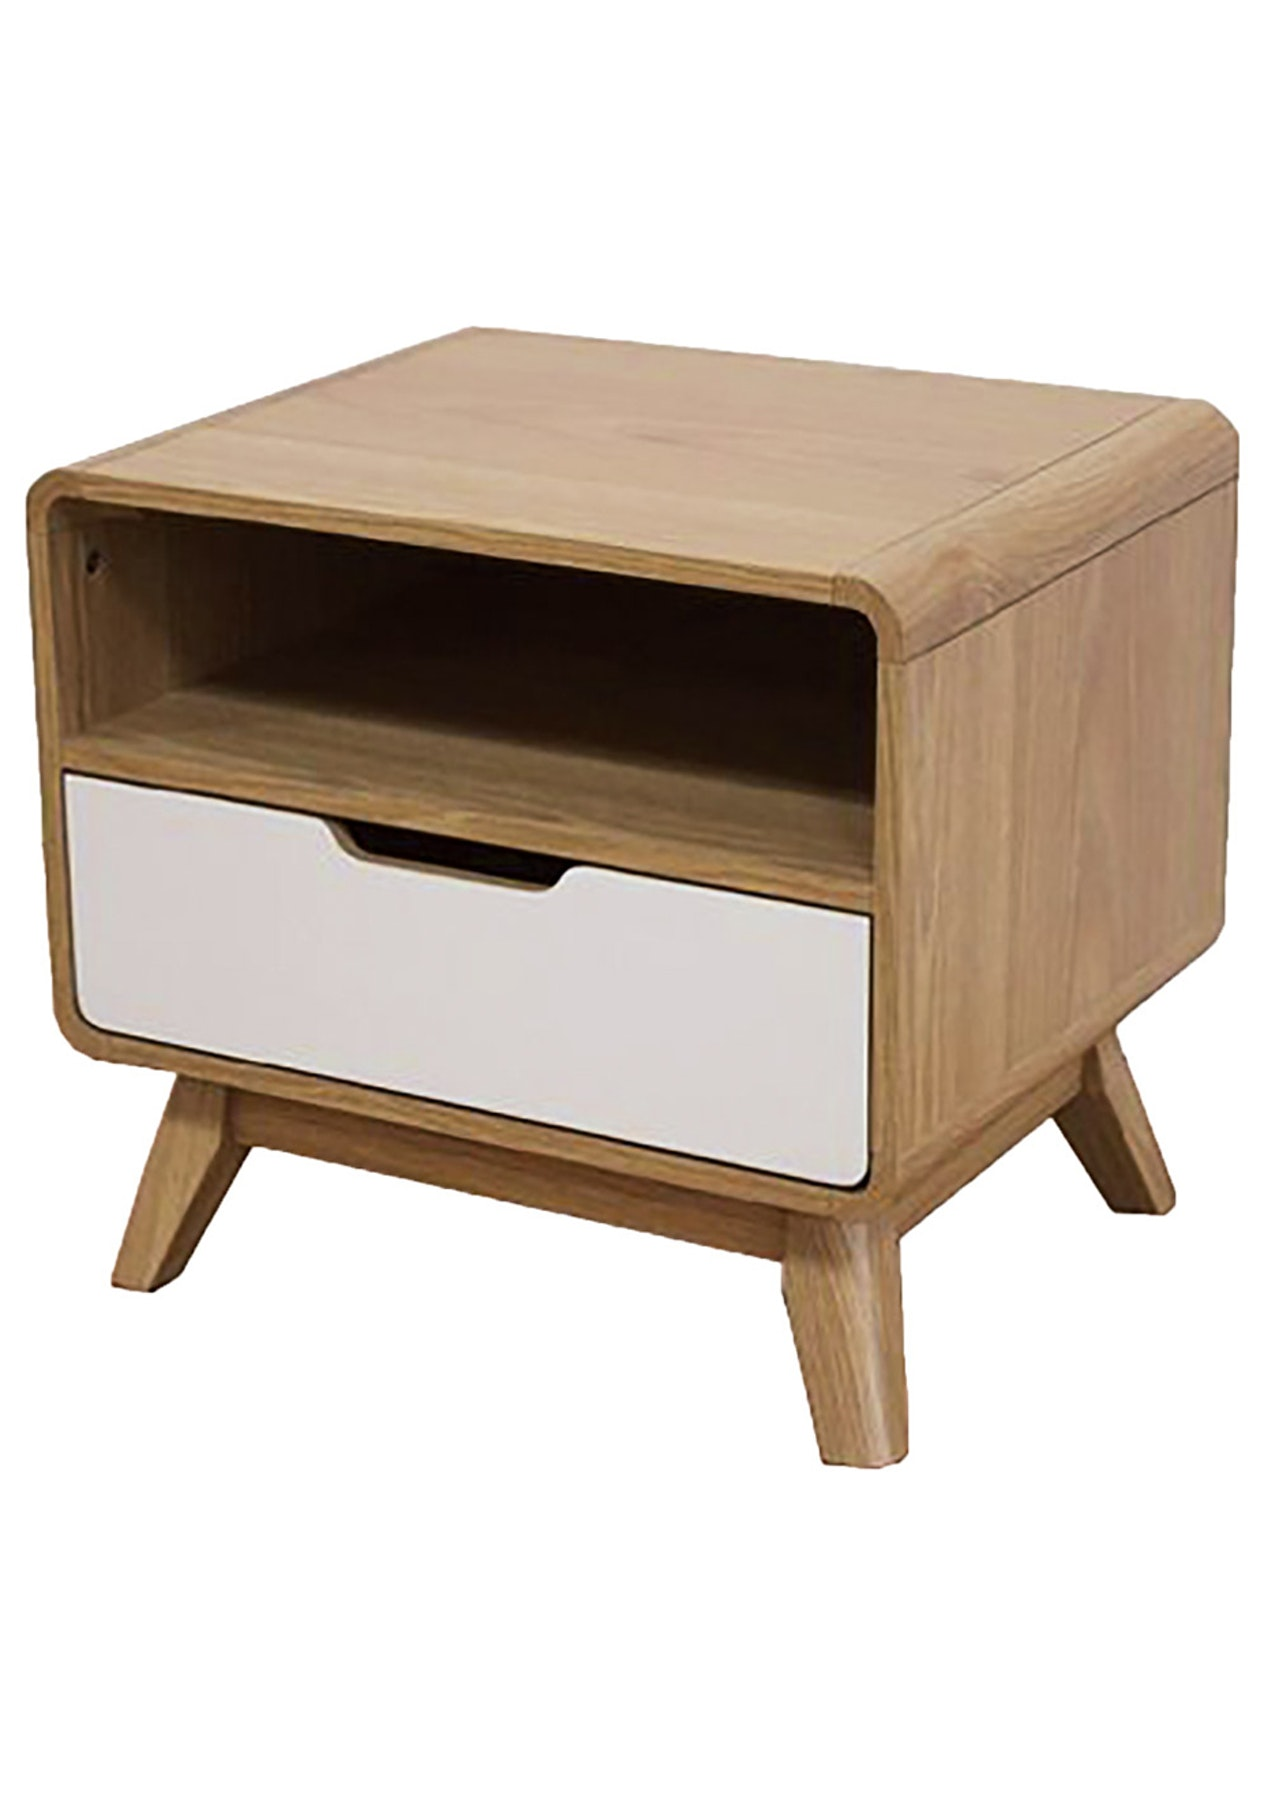 Retro Style Container Bedside Table: Retro Bedside Table